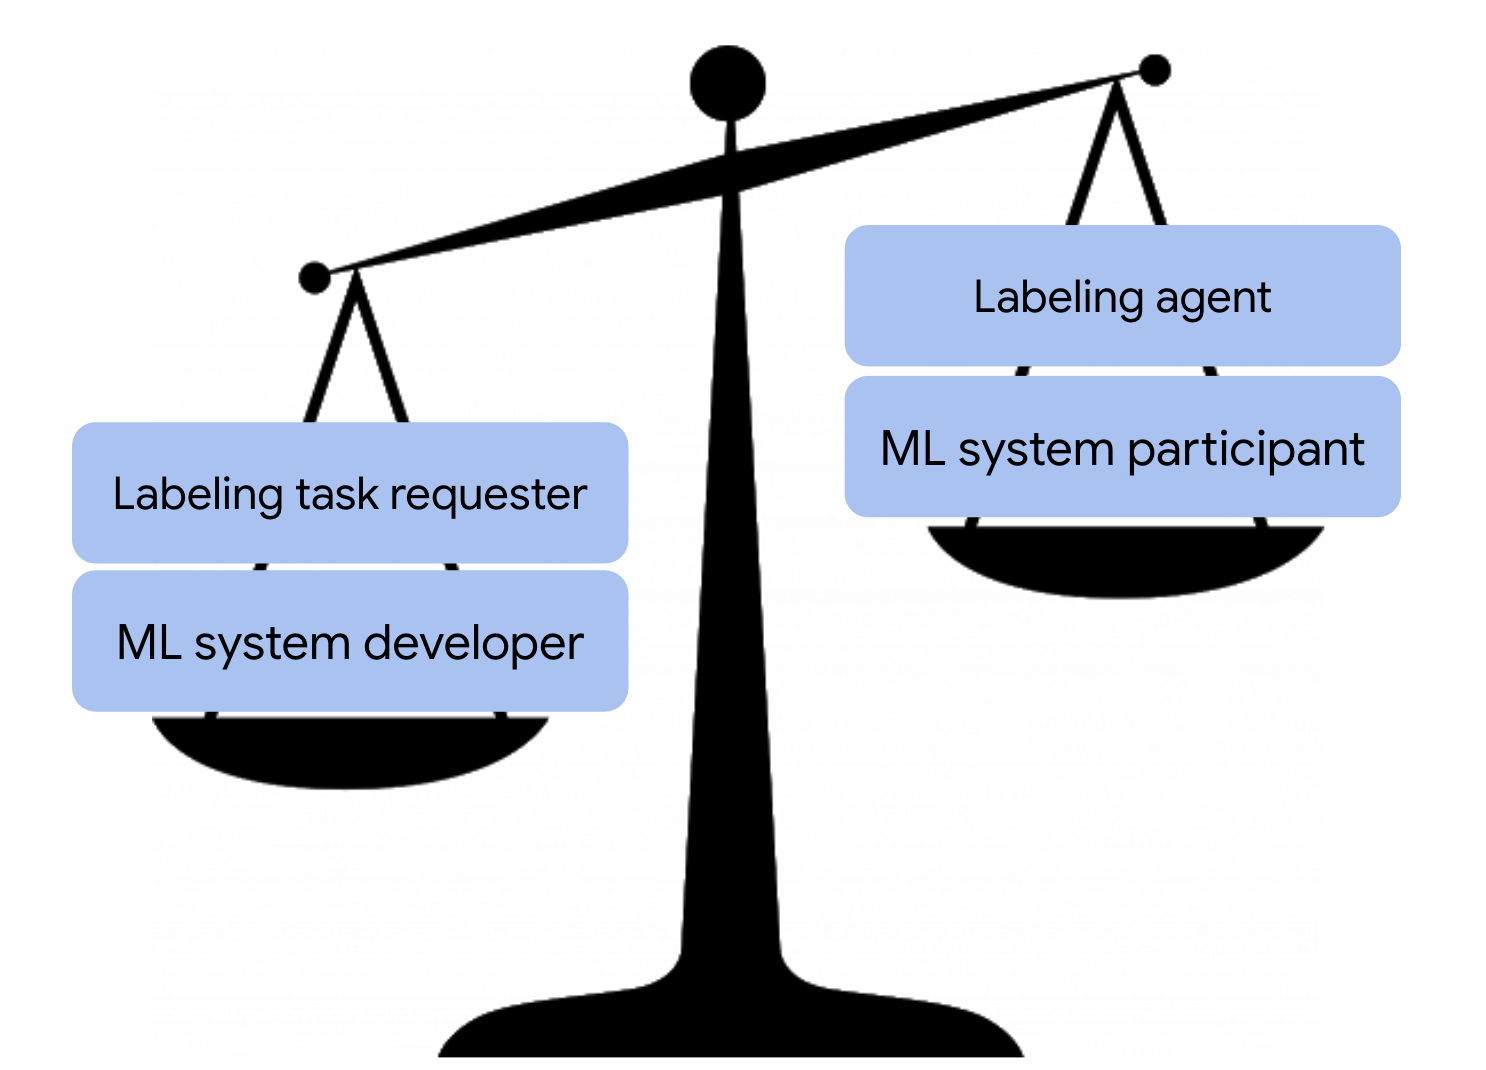 Imbalanced scale image — ML system developer & labeling task requester weigh more than ML system participant & labeling agent